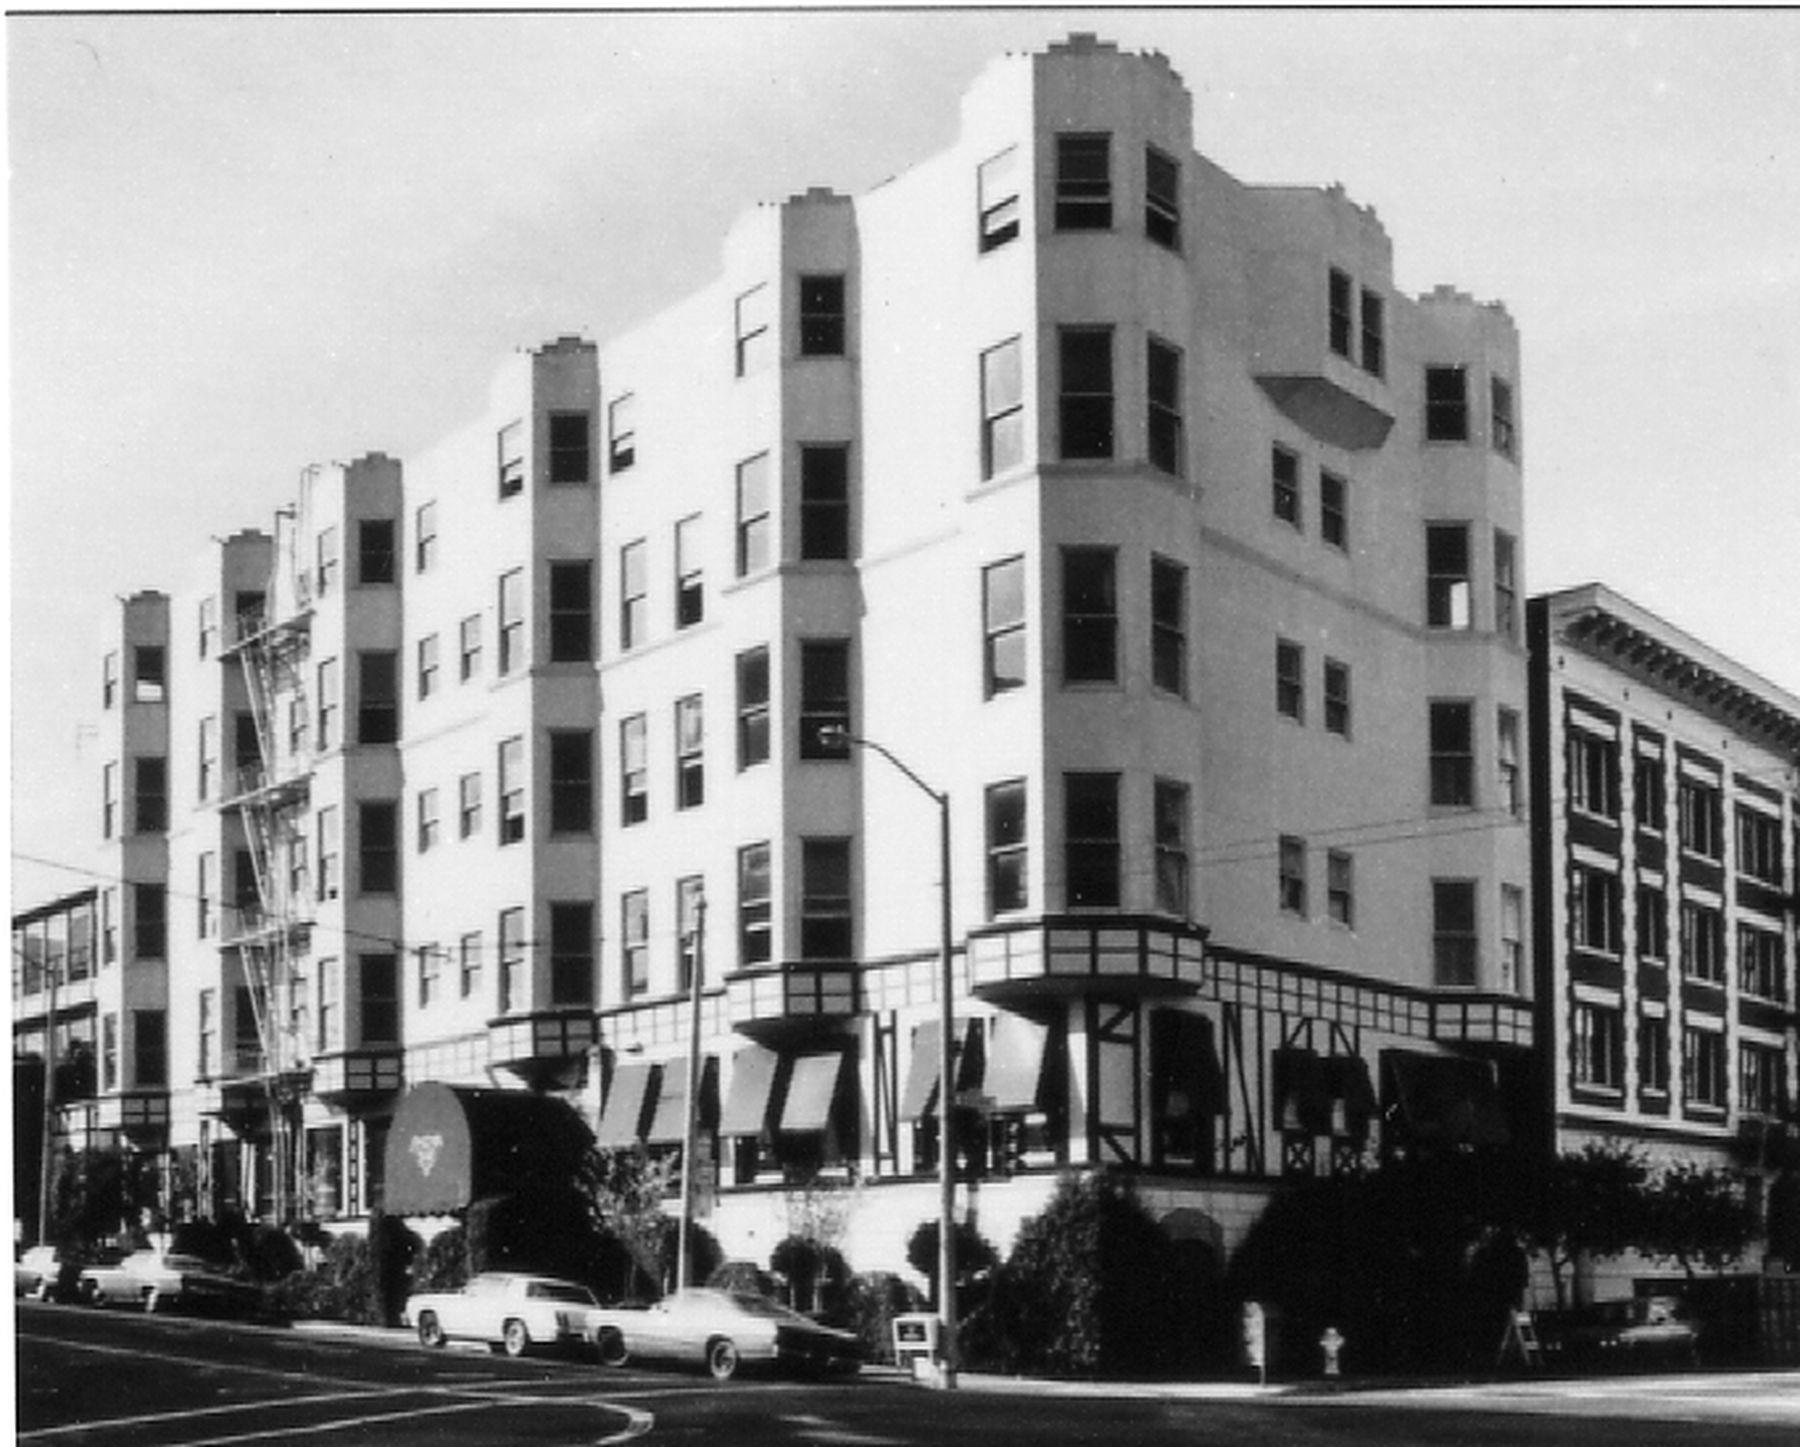 Photo of the hotel exterior as it was in 1980